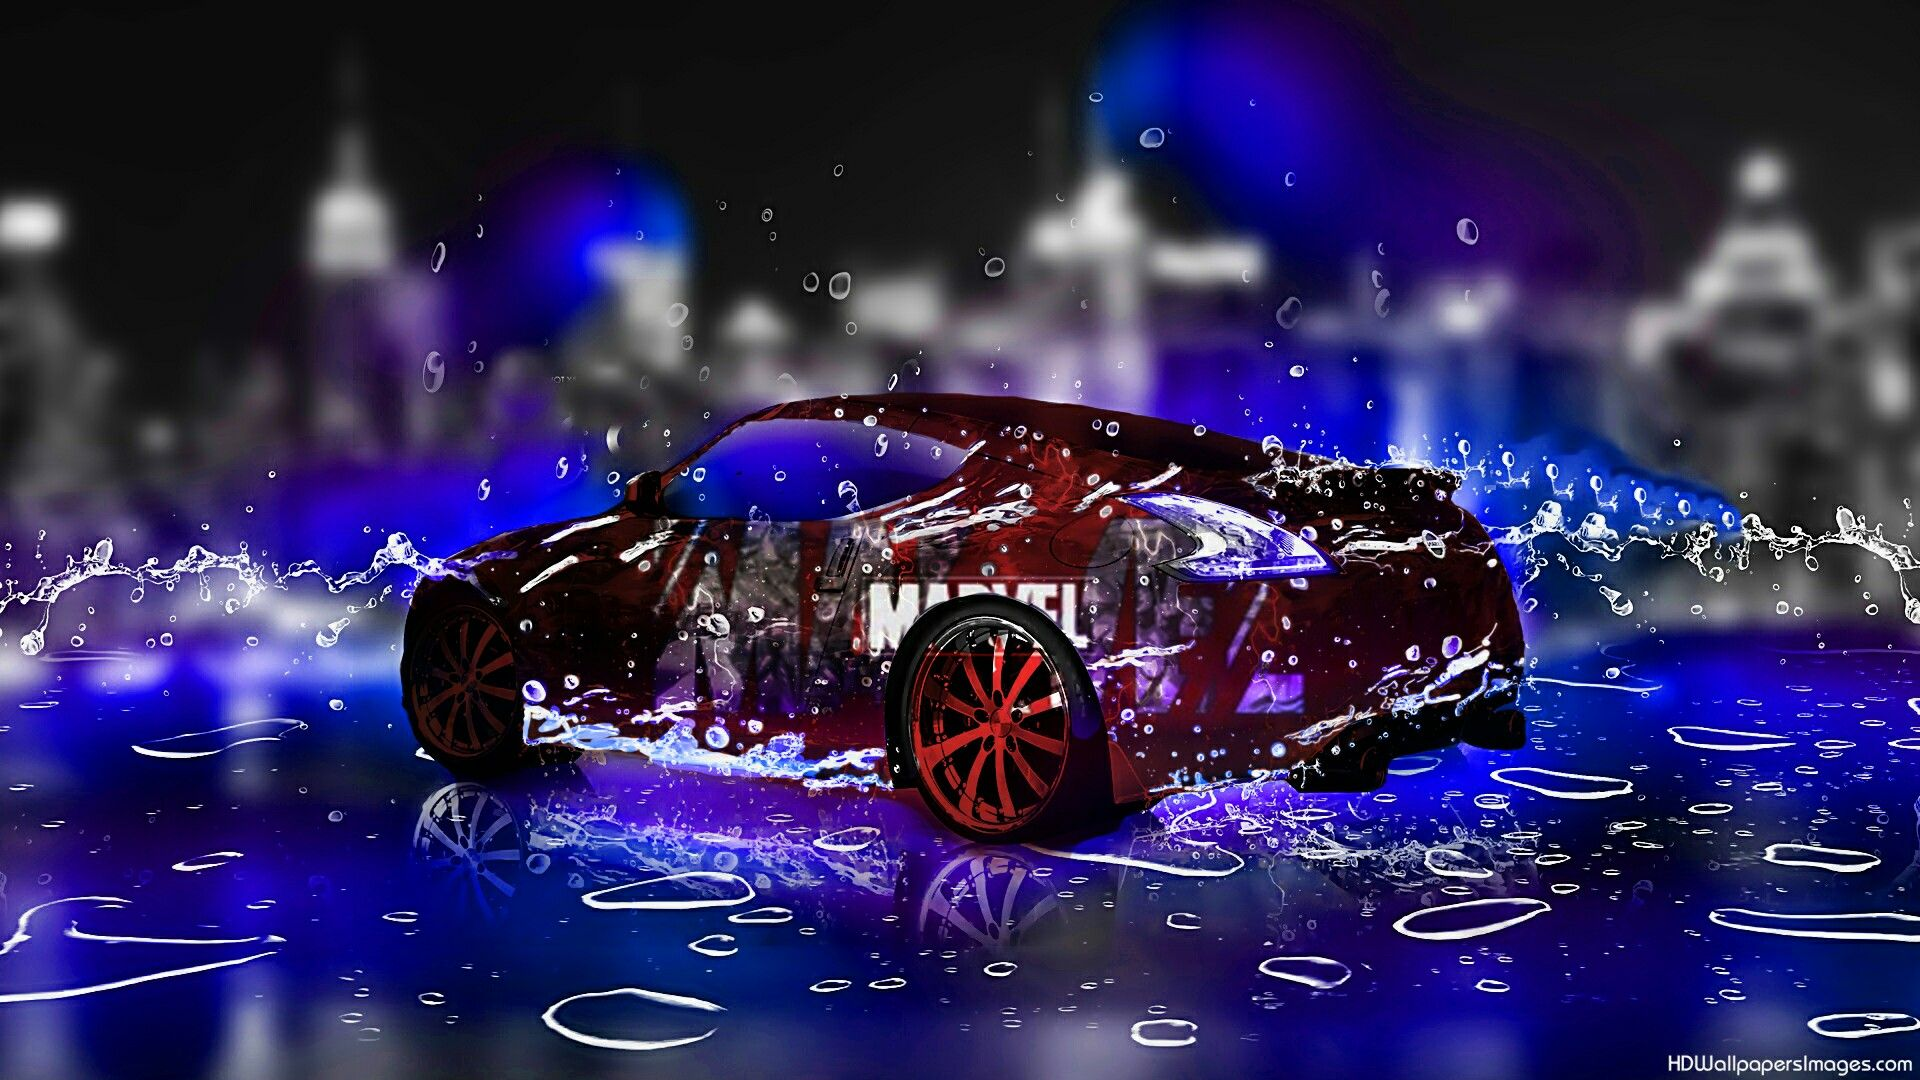 The Graphic Applied On The Car Body With Images 3d Wallpaper